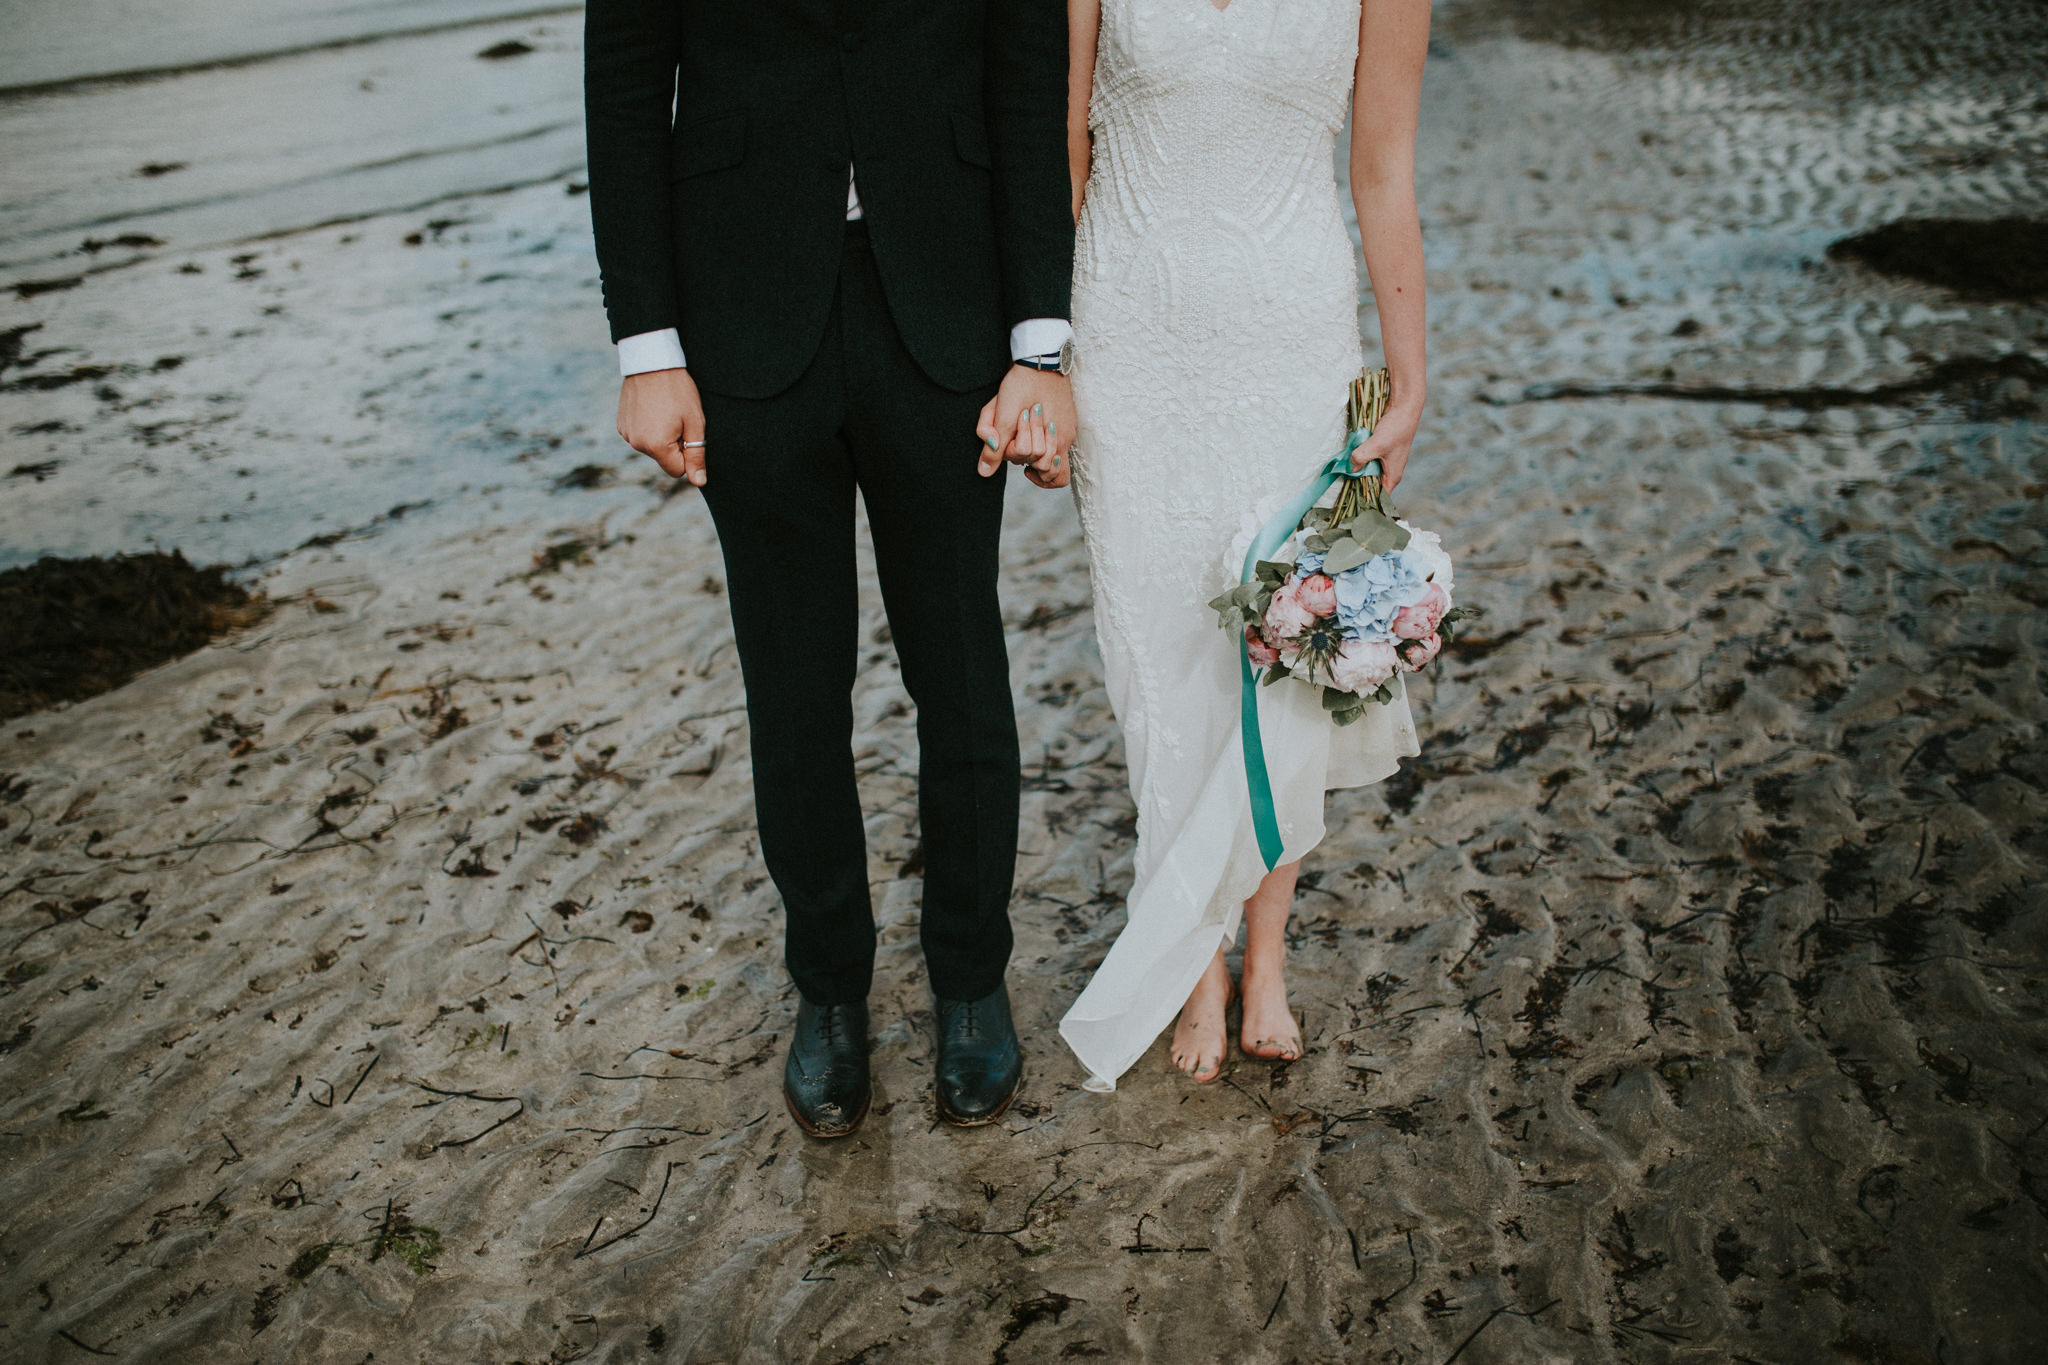 The wedding couple is standing at the beach.